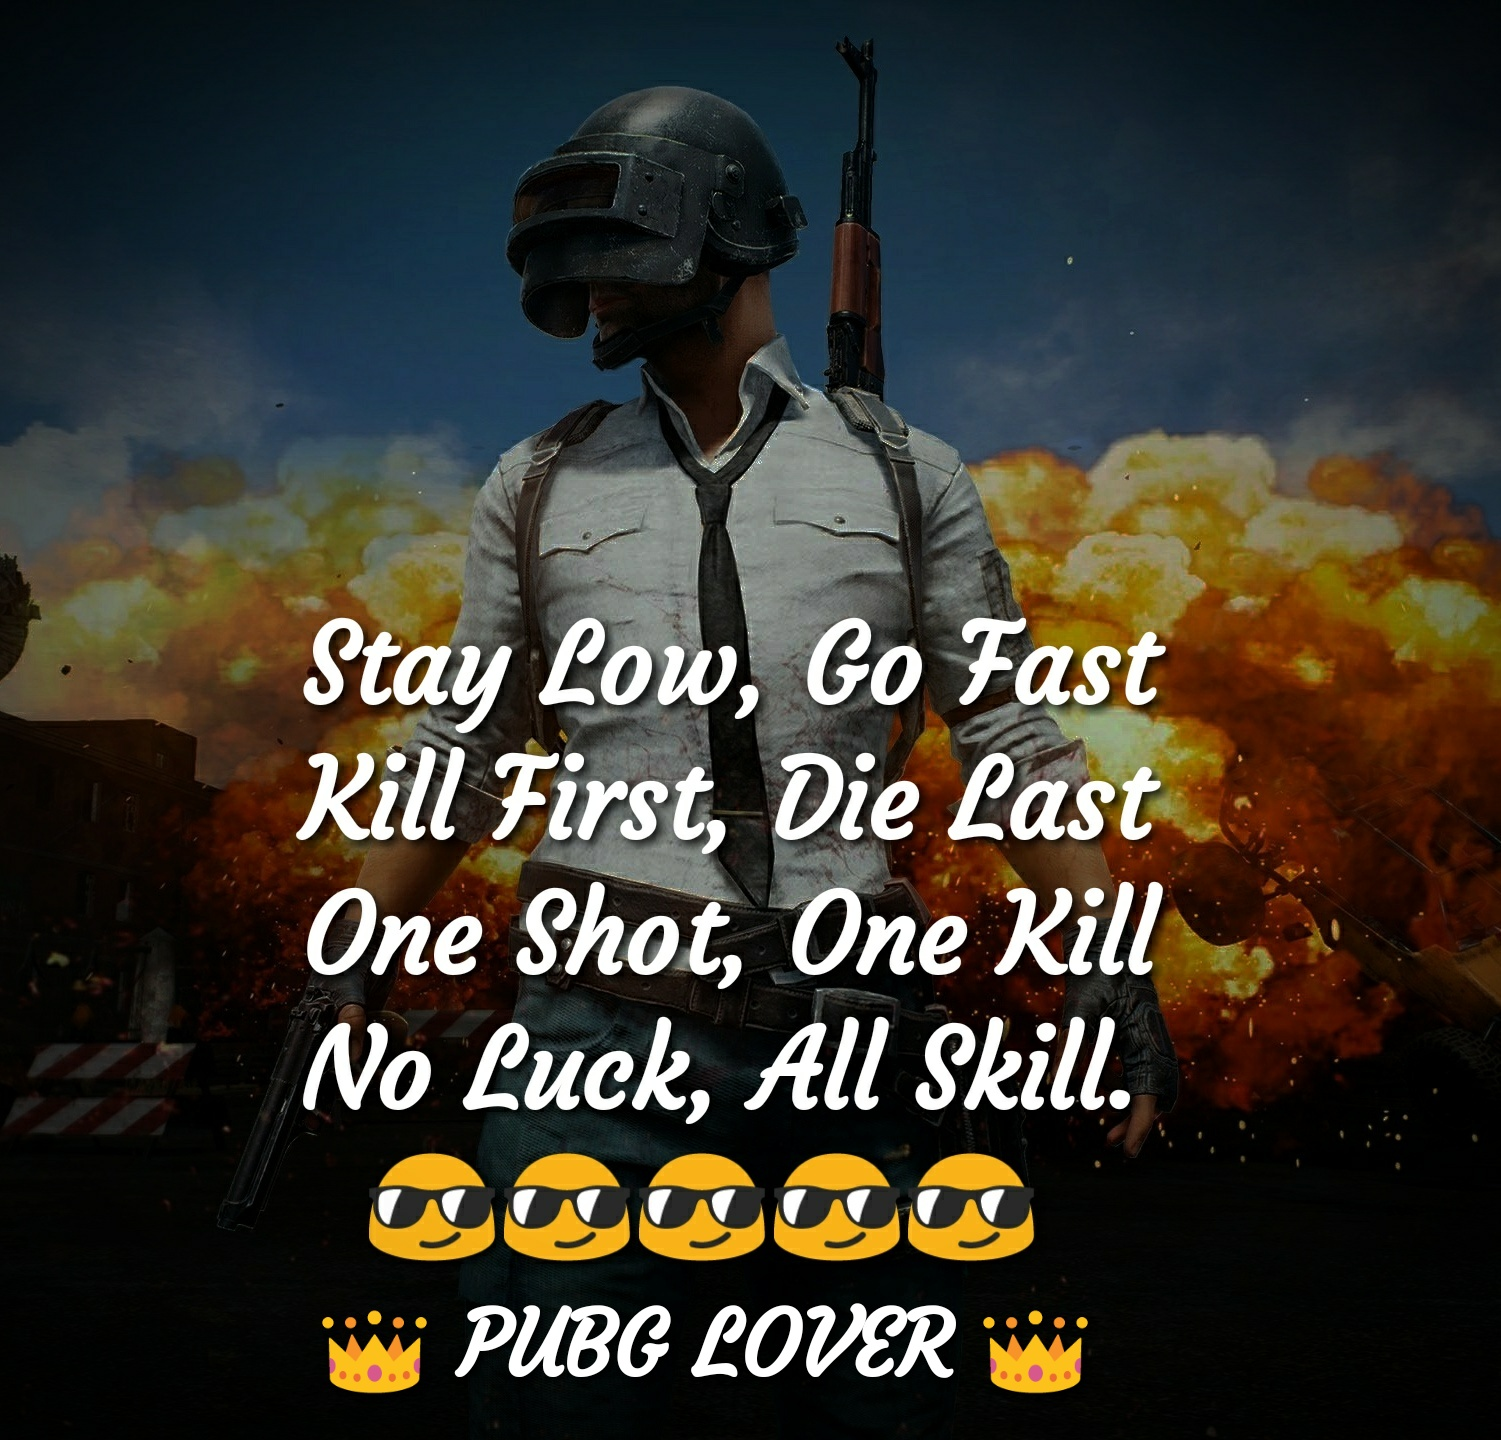 Pubg Lover Pic Hd - Pubg Free With Xbox One X